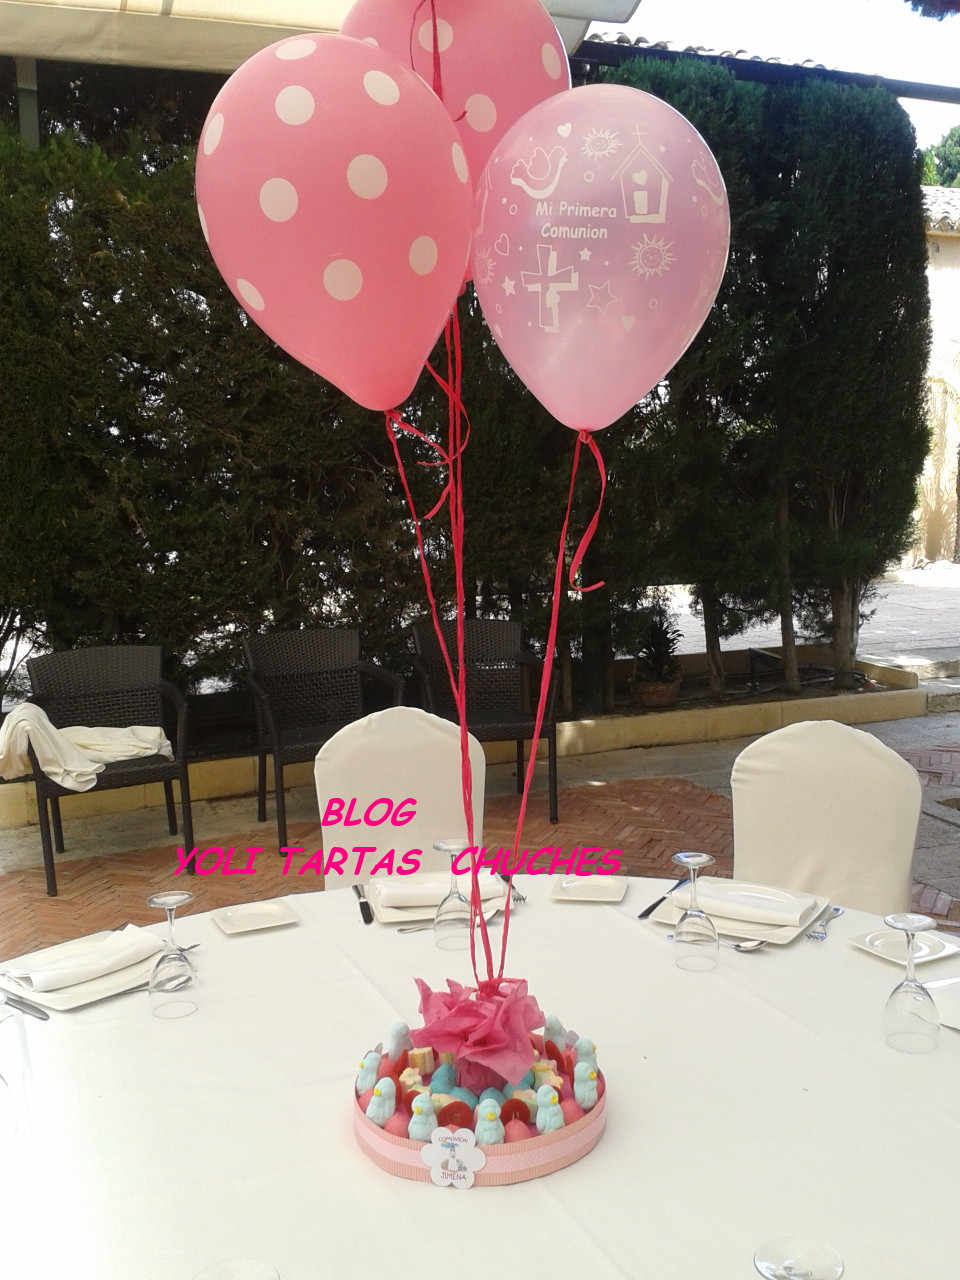 Yoli tartas chuches candy bar para jimena for Centros de mesa con chuches